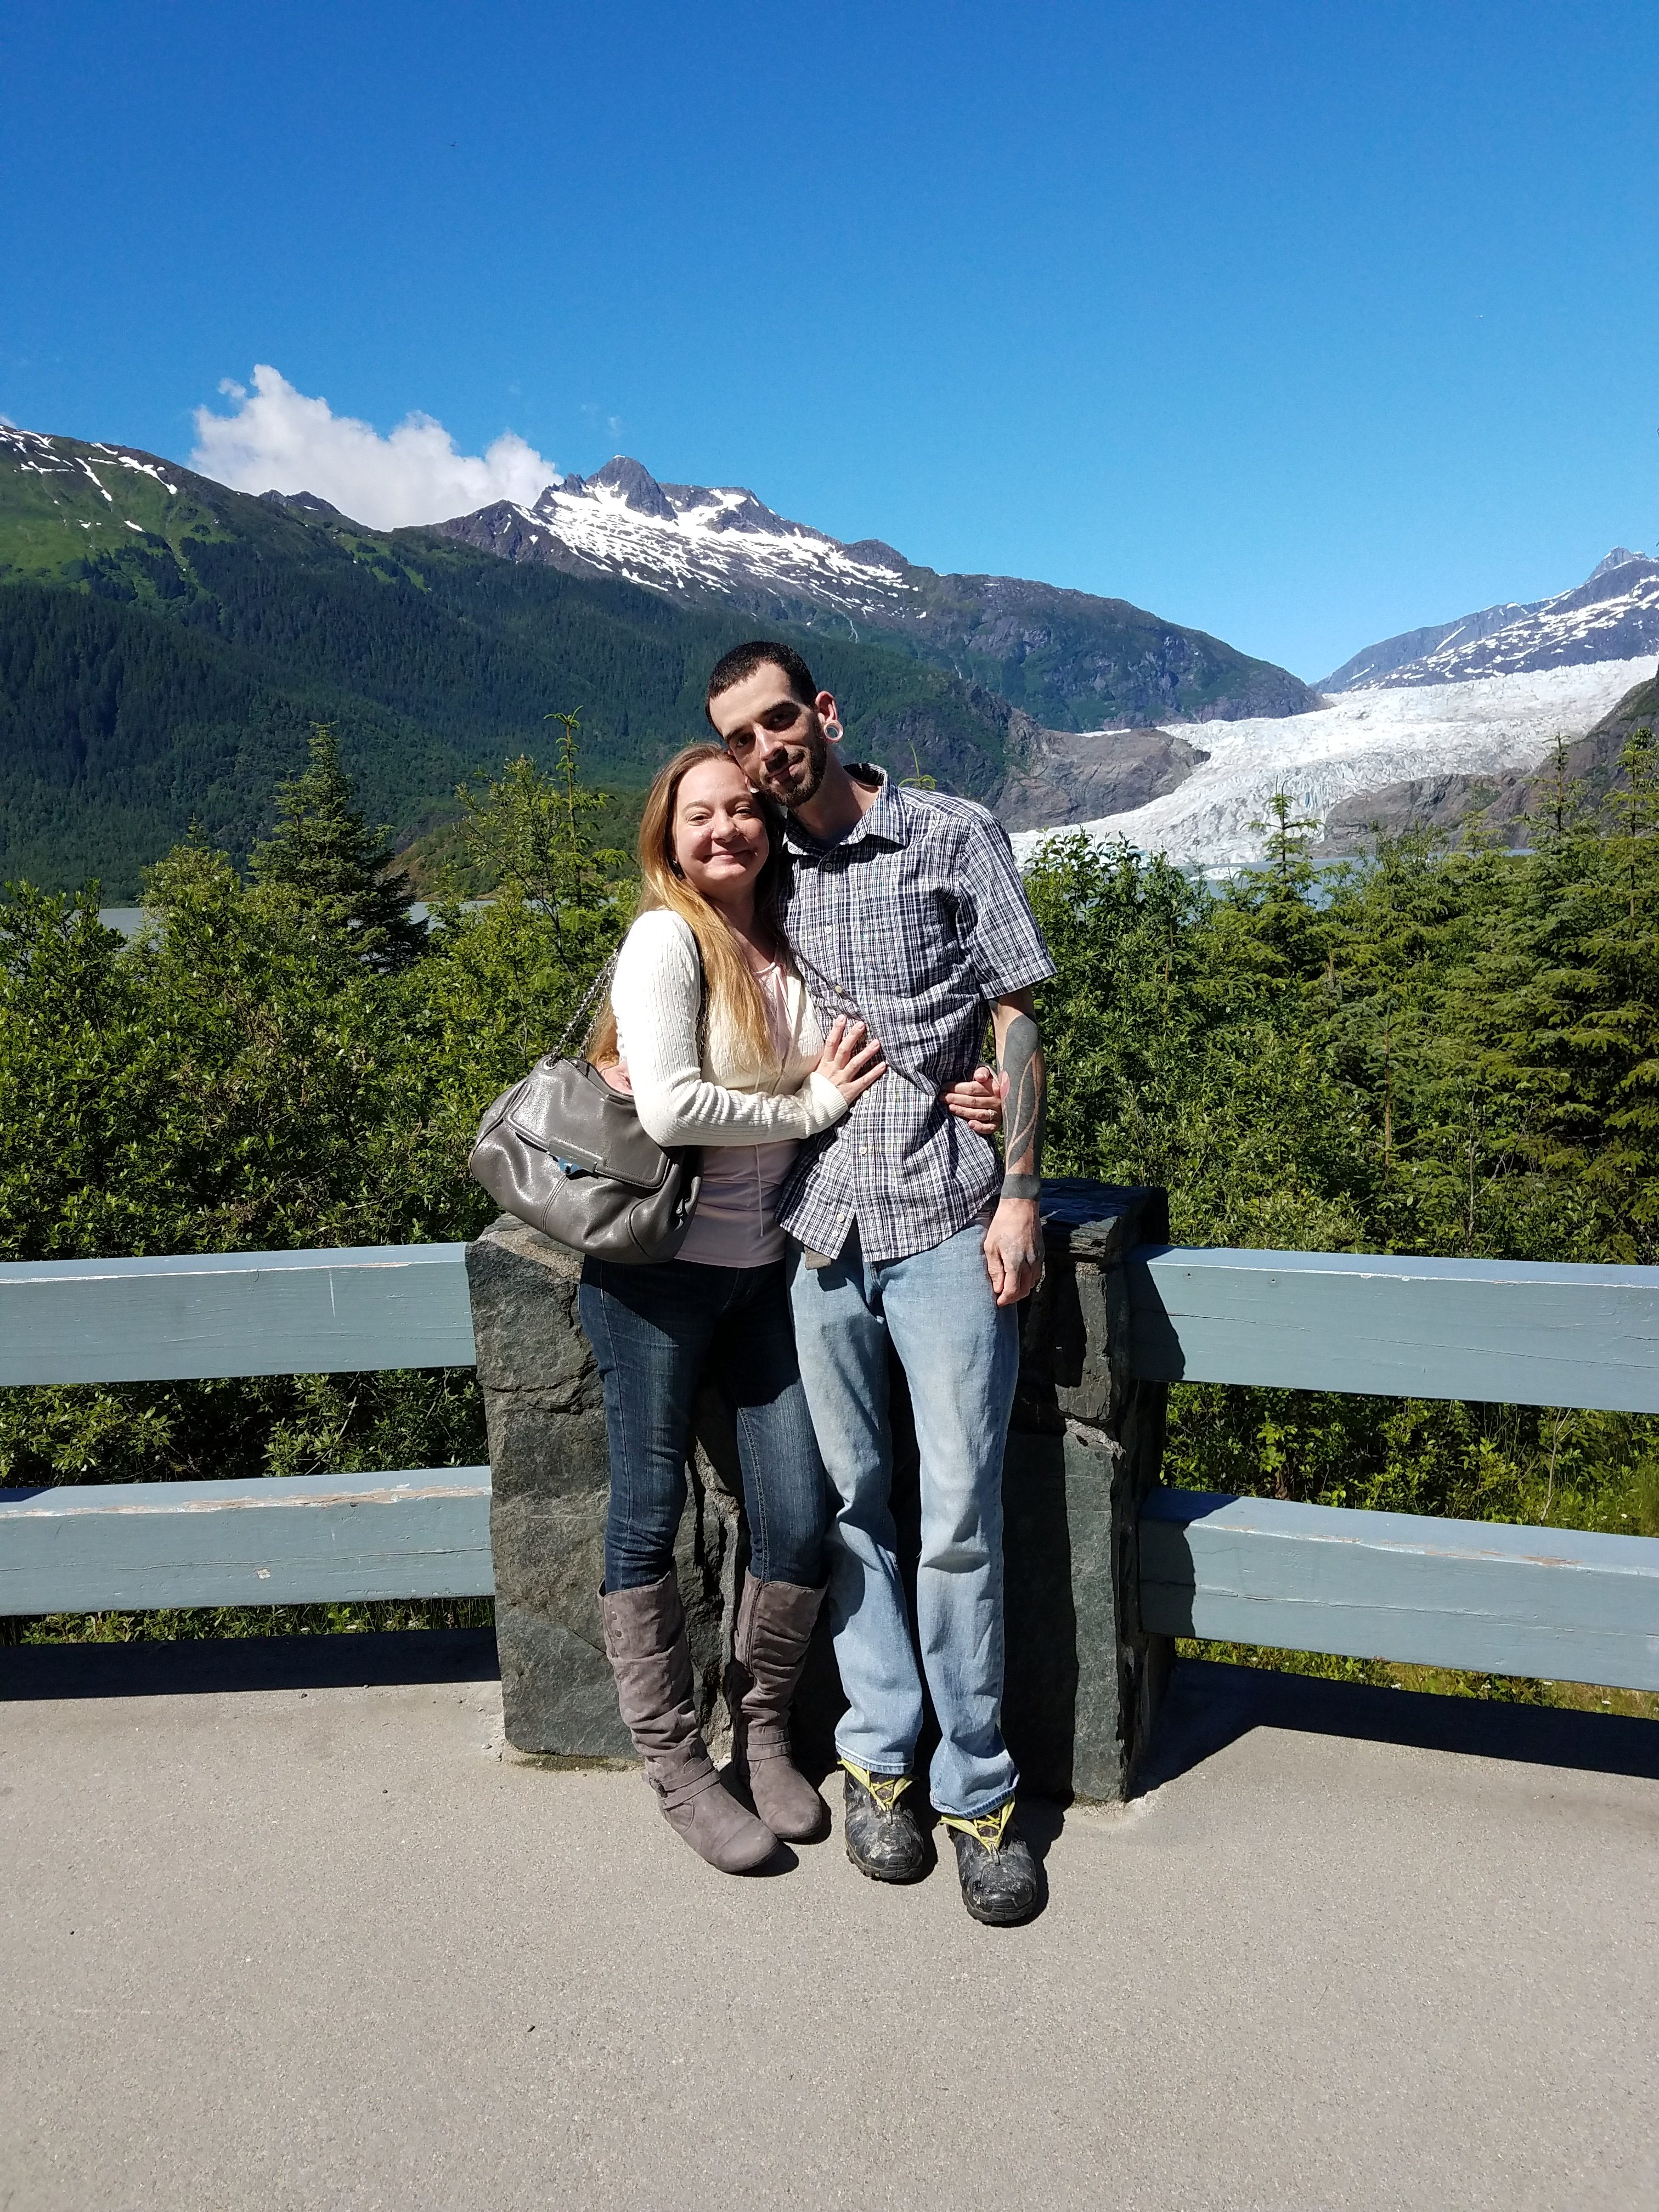 Photo of a couple at the Mendenhall Glacier viewing pavilion with the glacier in the background.